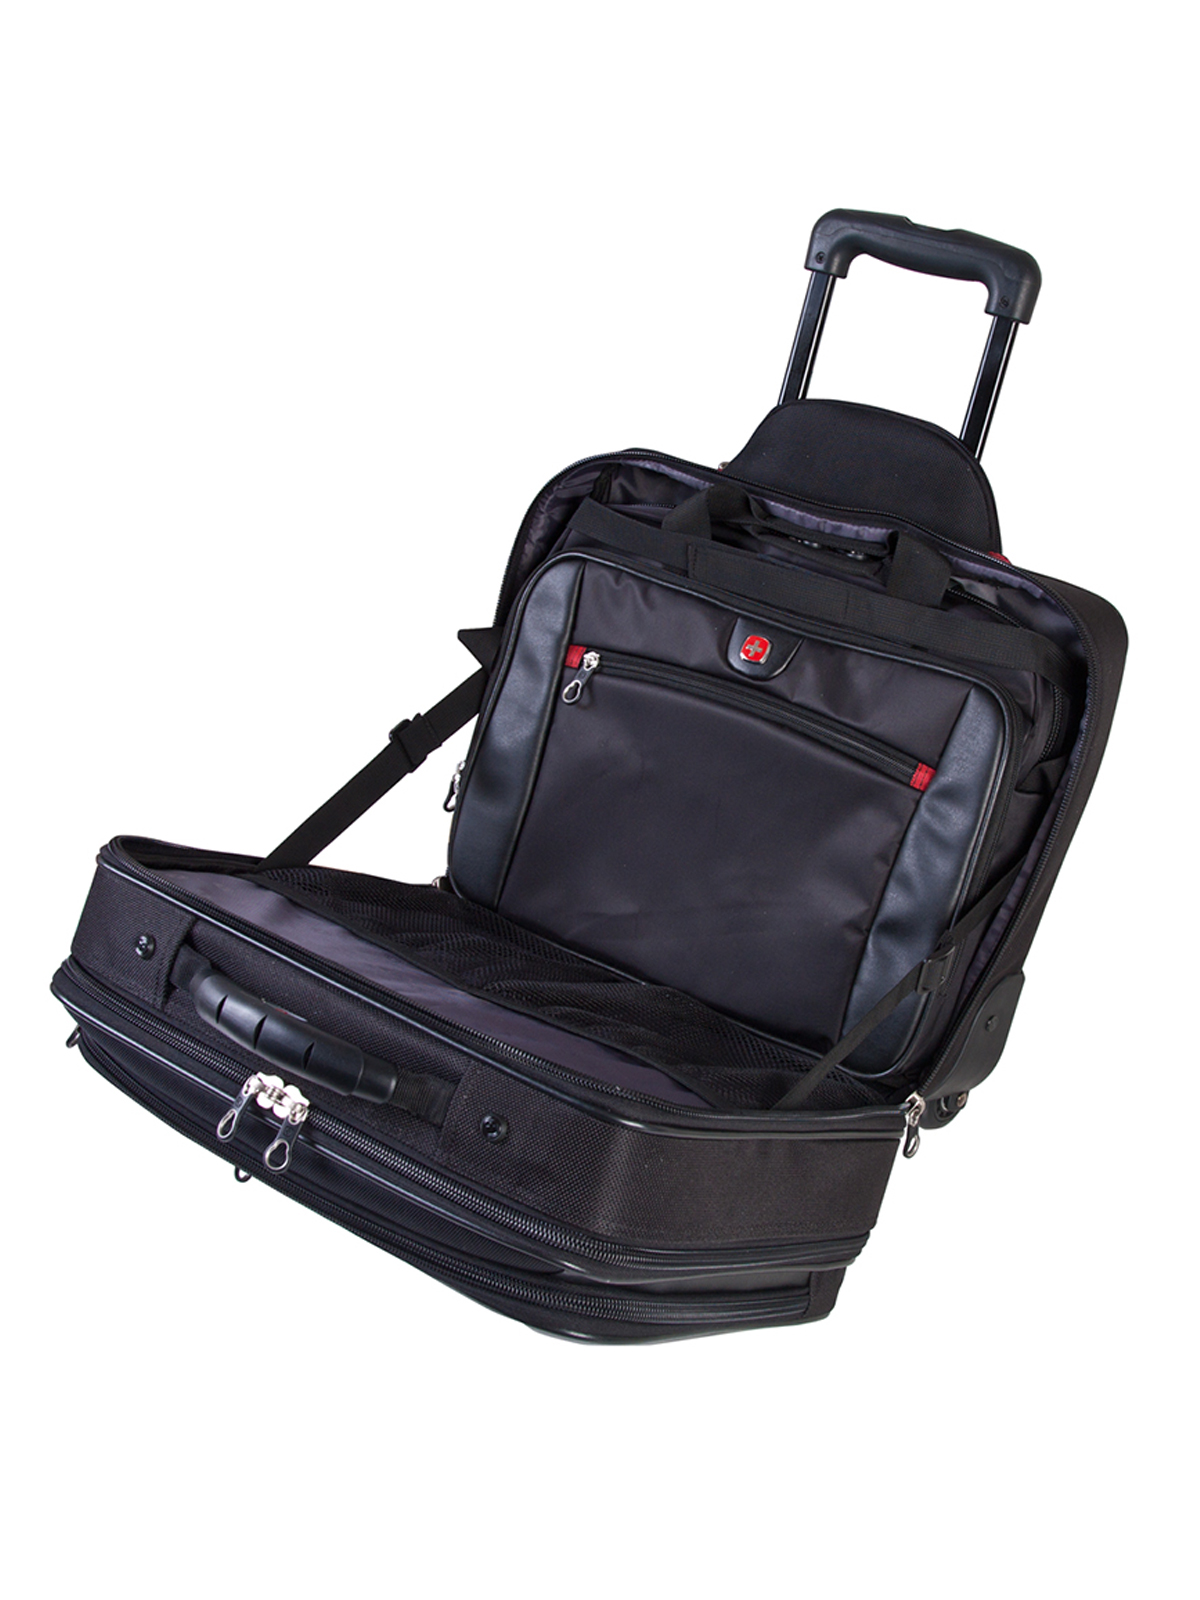 Swiss Gear Laptop Case Detachable Computer Bag Holiday